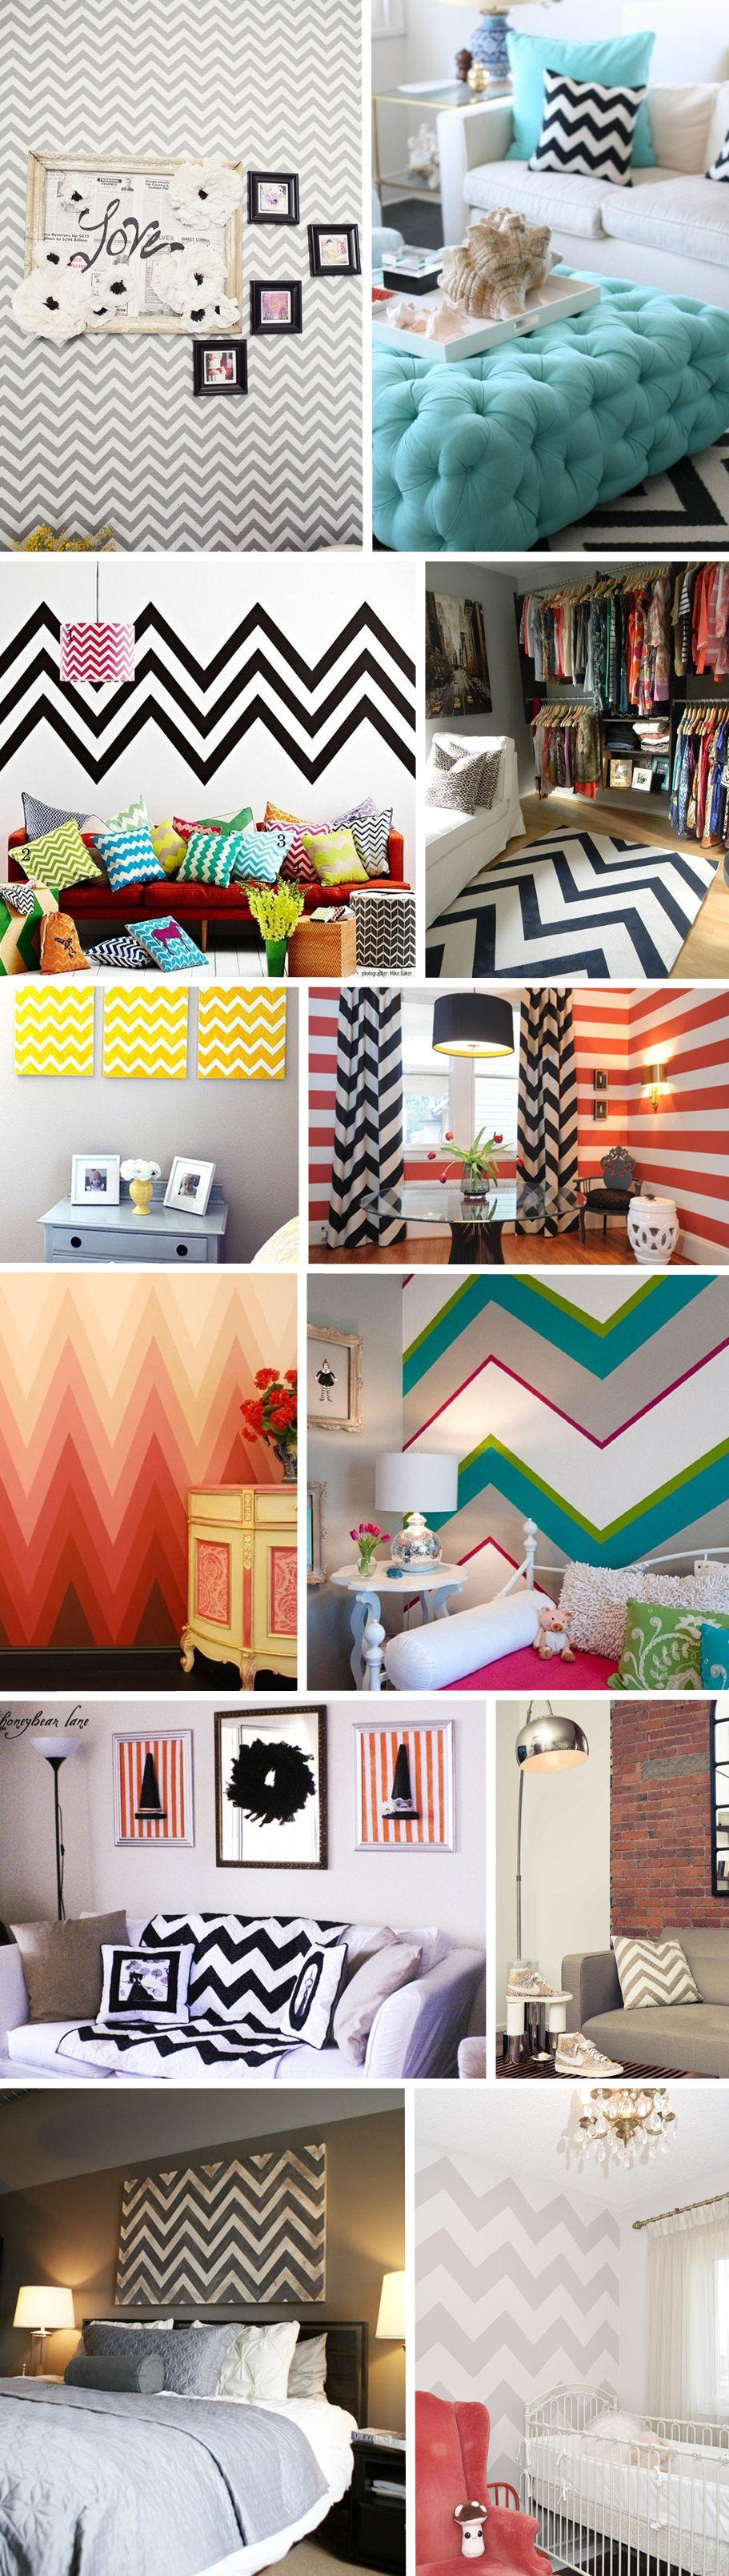 chevron-decor-lar